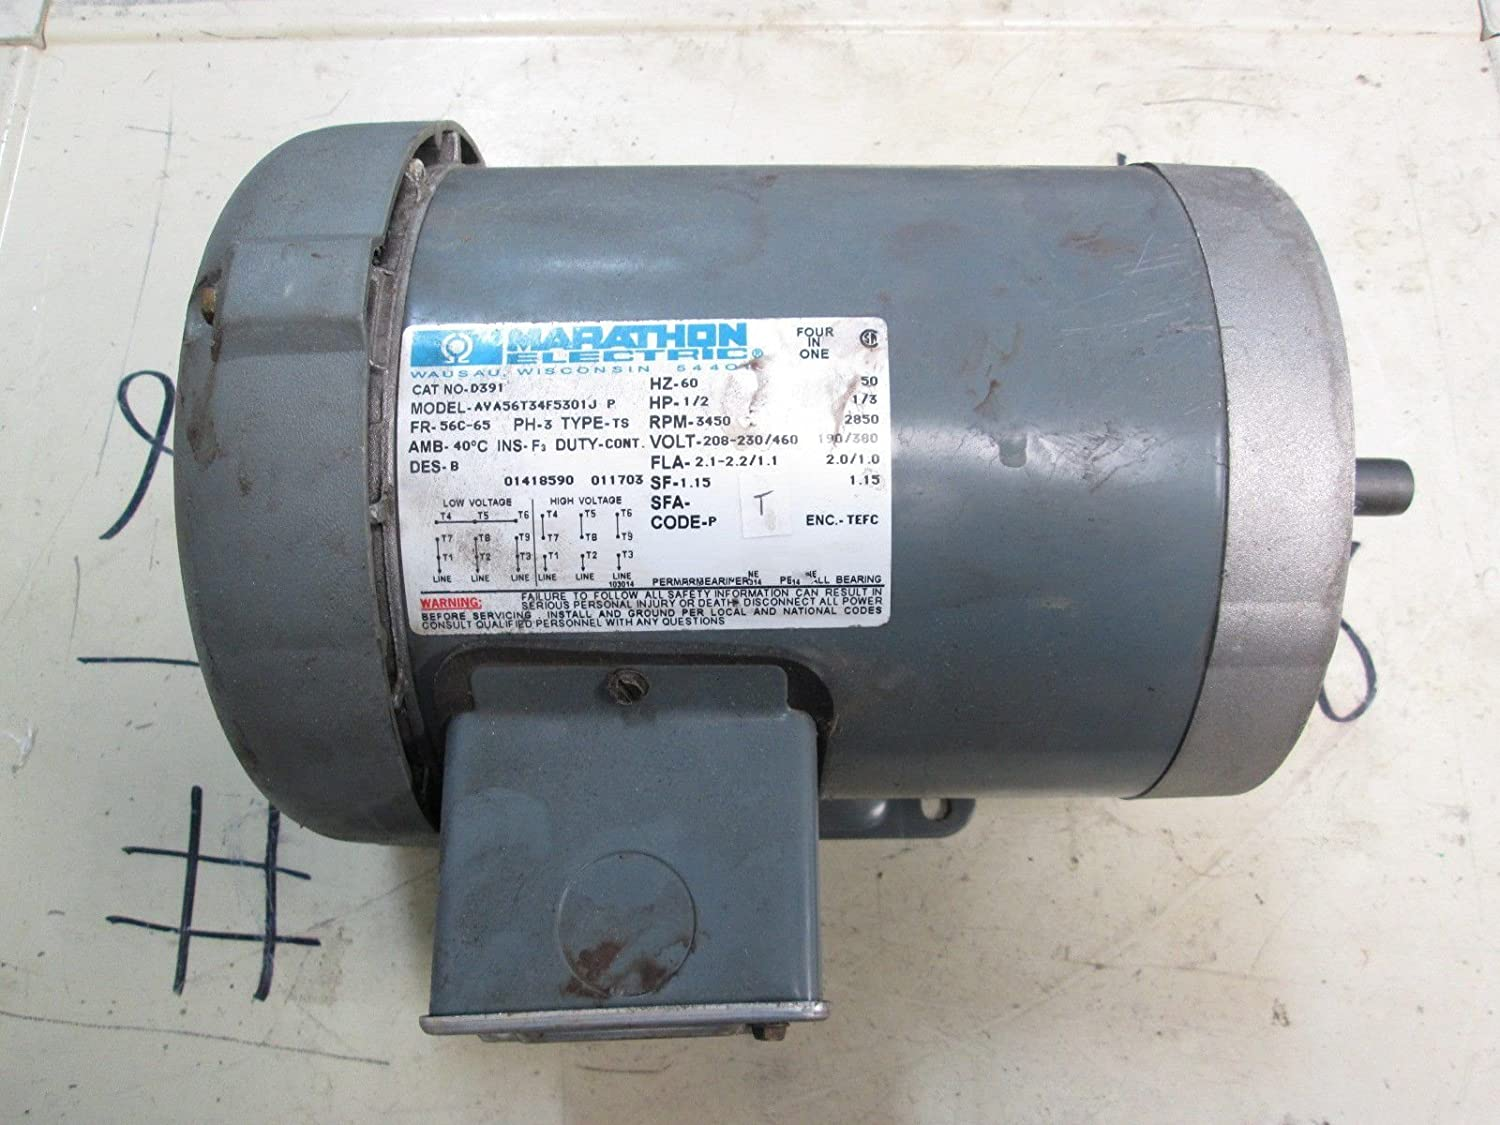 Marathon D391 56C Frame 56T34F5301 TEFC General Purpose Motor, 3 Phase, C-Face with Base, Ball Bearing, 1/2 hp, 3600 RPM, 1 Speed, 208-230/460 VAC